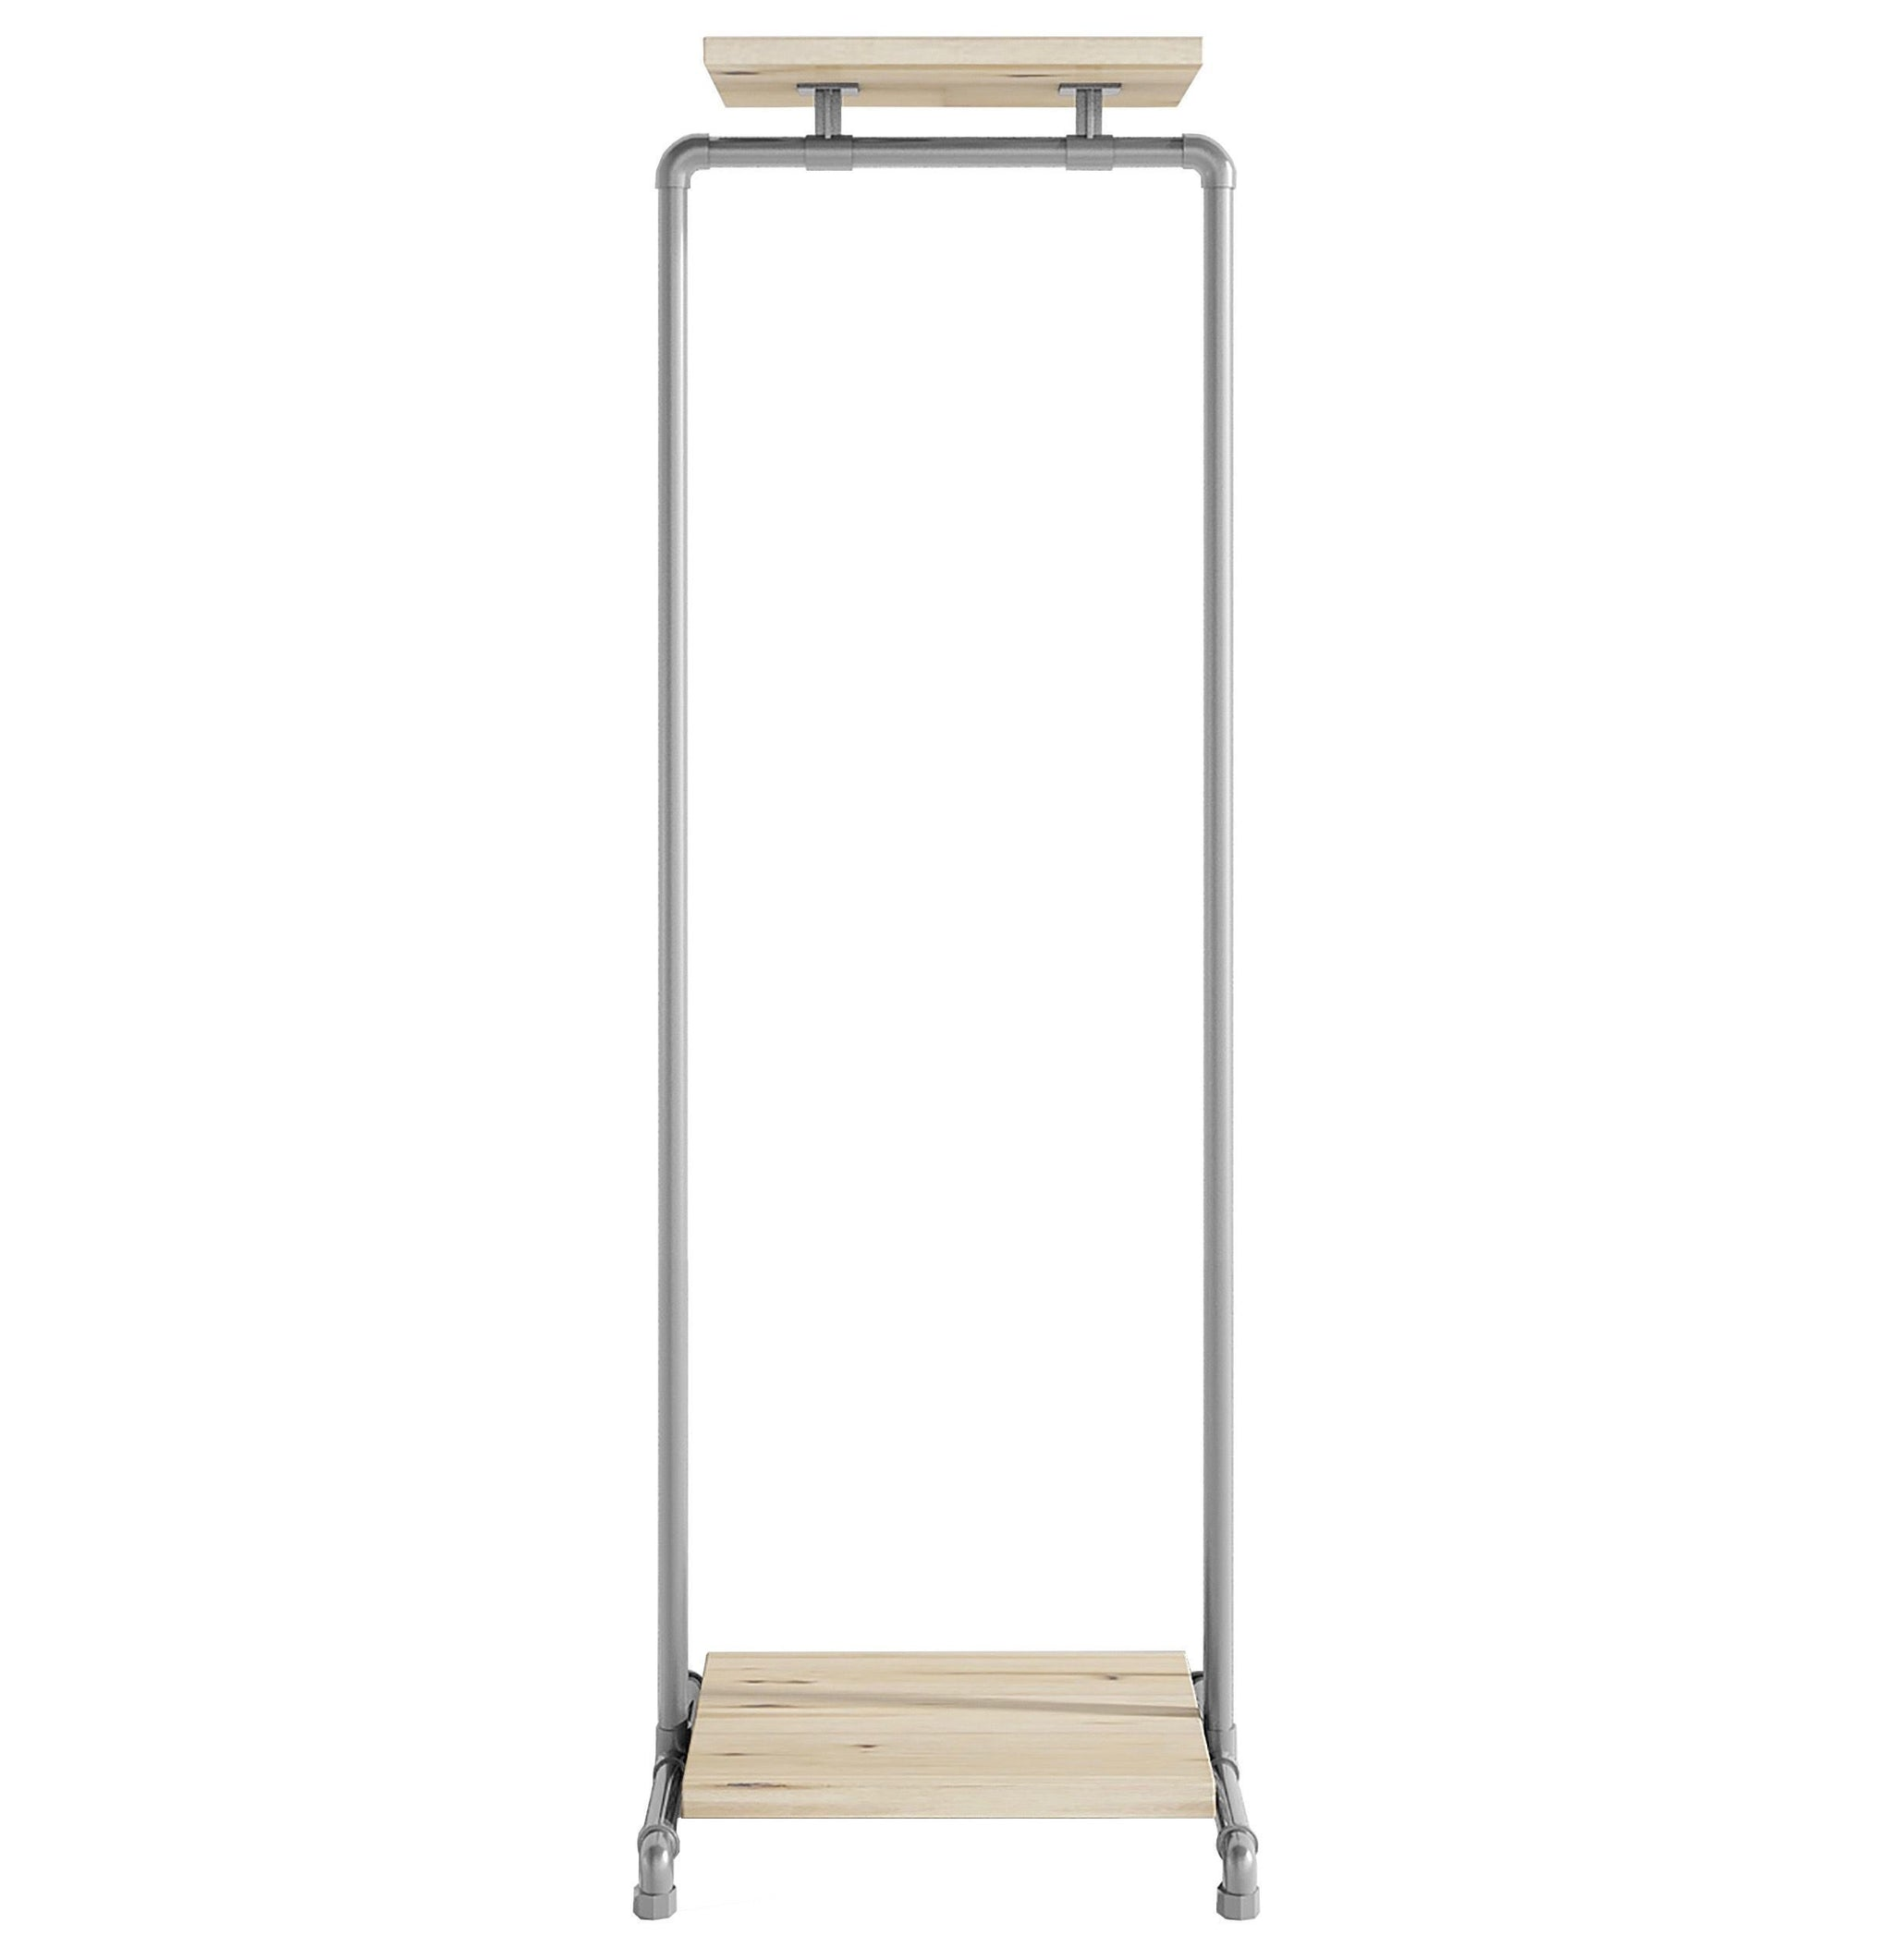 Ziito Clothes Rail C1 / 50 cm / Uden Wood Double Shelf Tøjstativ